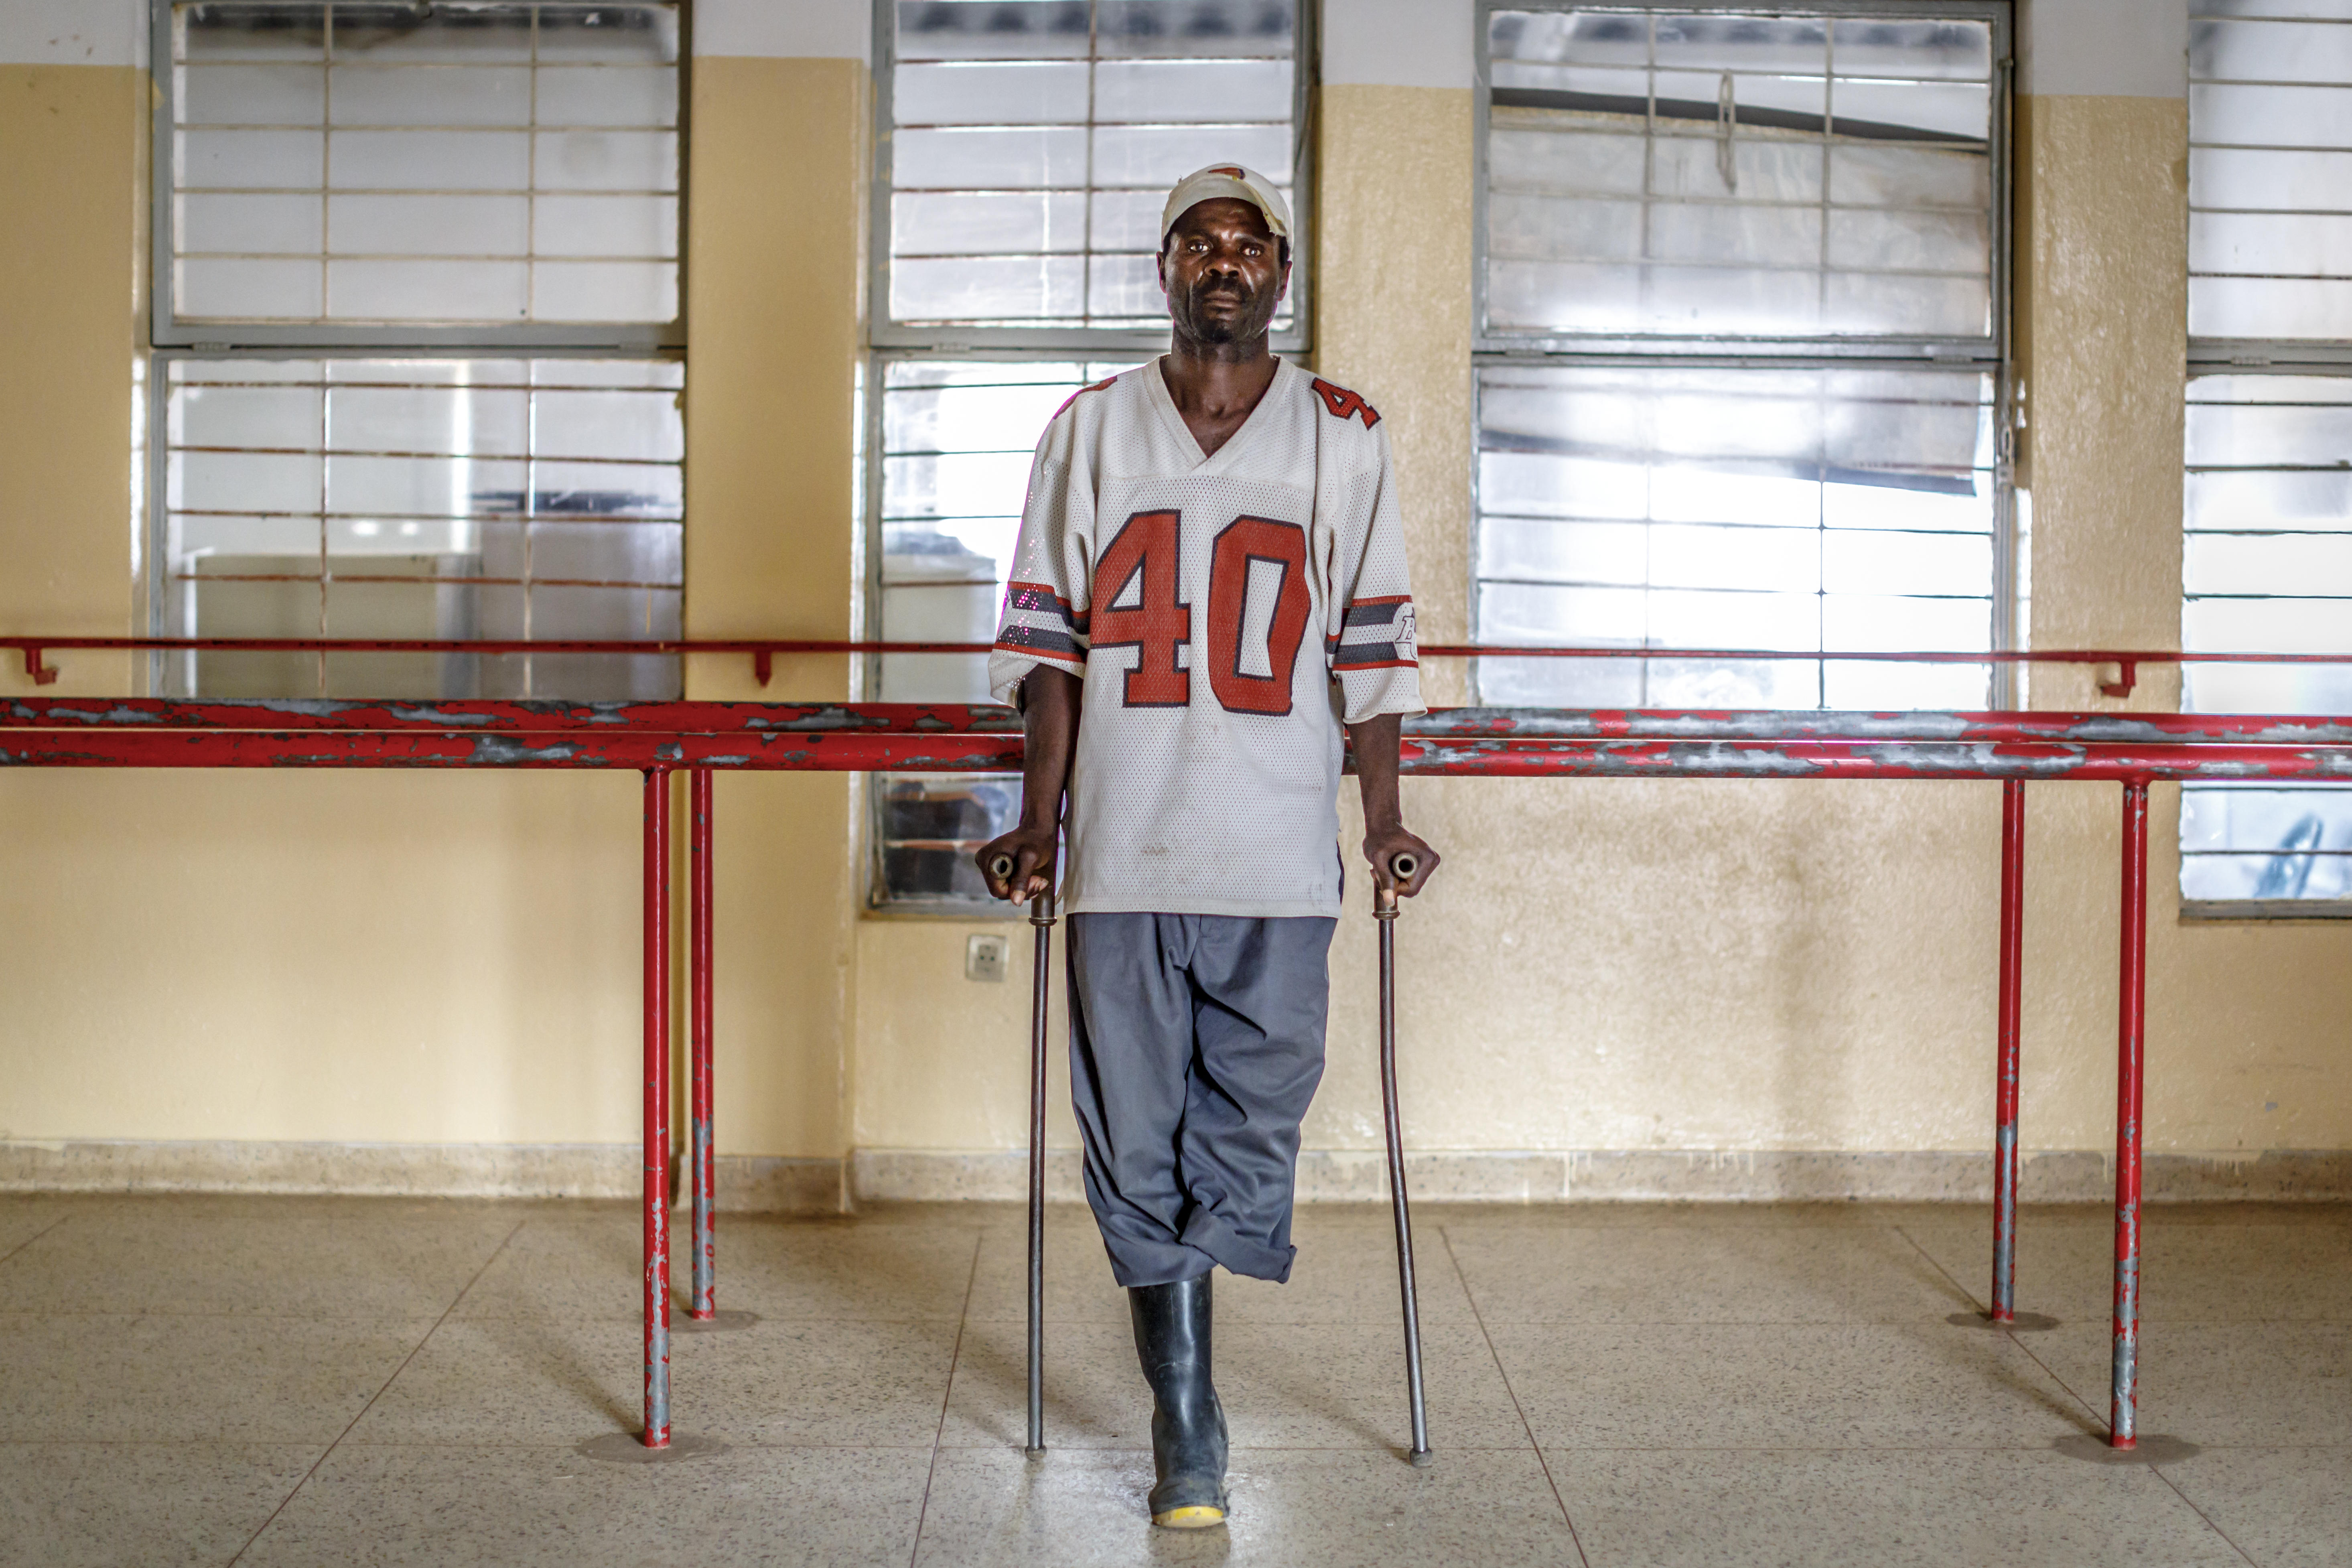 Abel Mbussolo still waits for a prosthetic leg after his first one was destroyed in a house fire. In 2012, he stepped on a trip wire while walking to farm his crops.